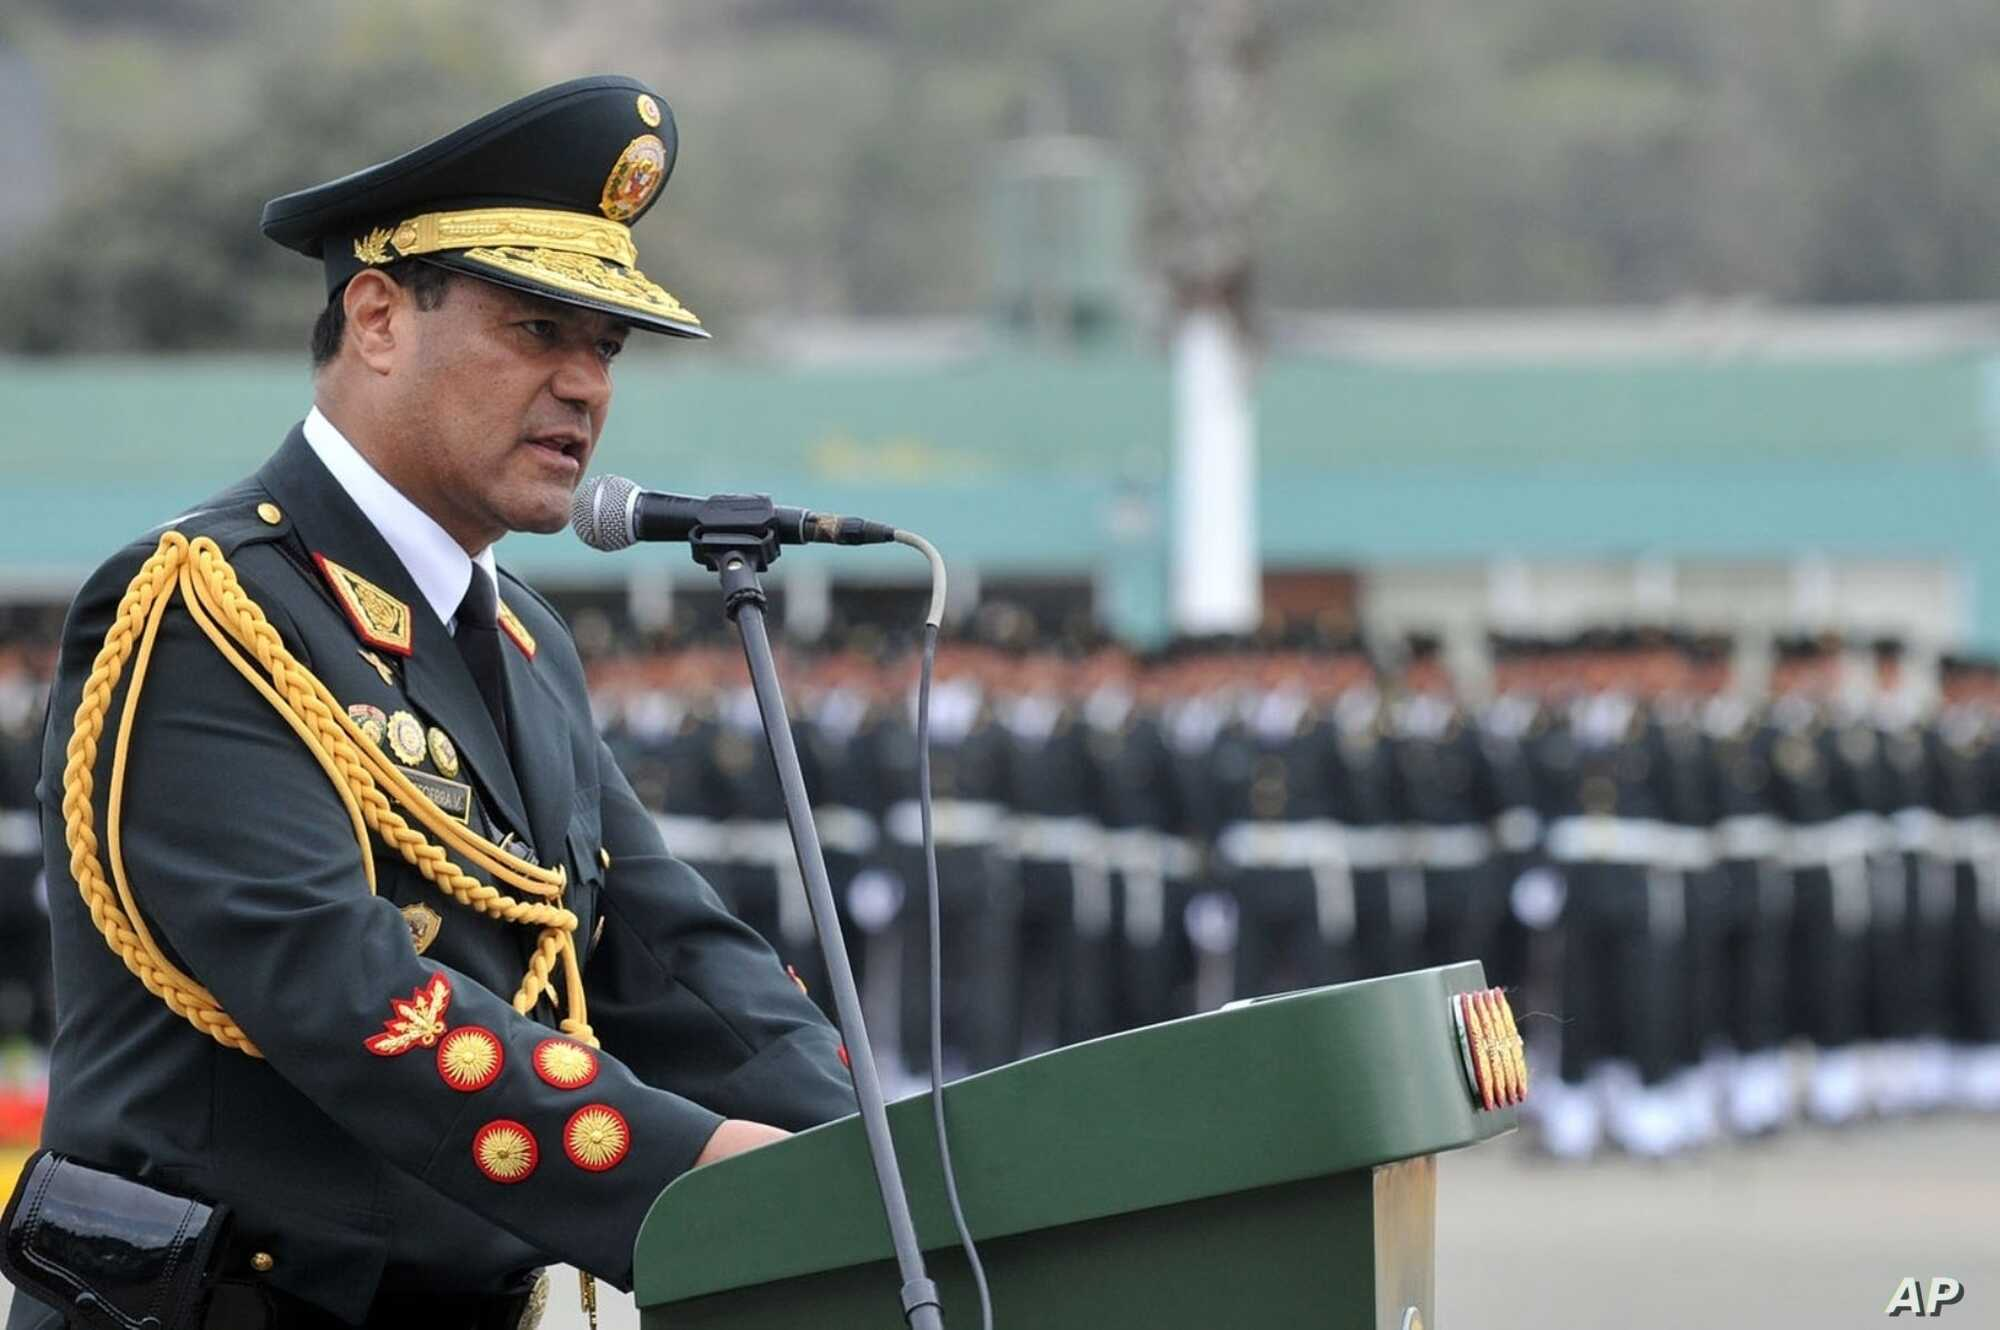 FILE - Gen. Raul Becerra, former head of the national police force, speaks during a police ceremony in Lima, Peru, Nov. 3, 2016, in this photo provided by the government news agency Andina. Authorities in Peru said Nov. 6, 2018, that Becerra is under